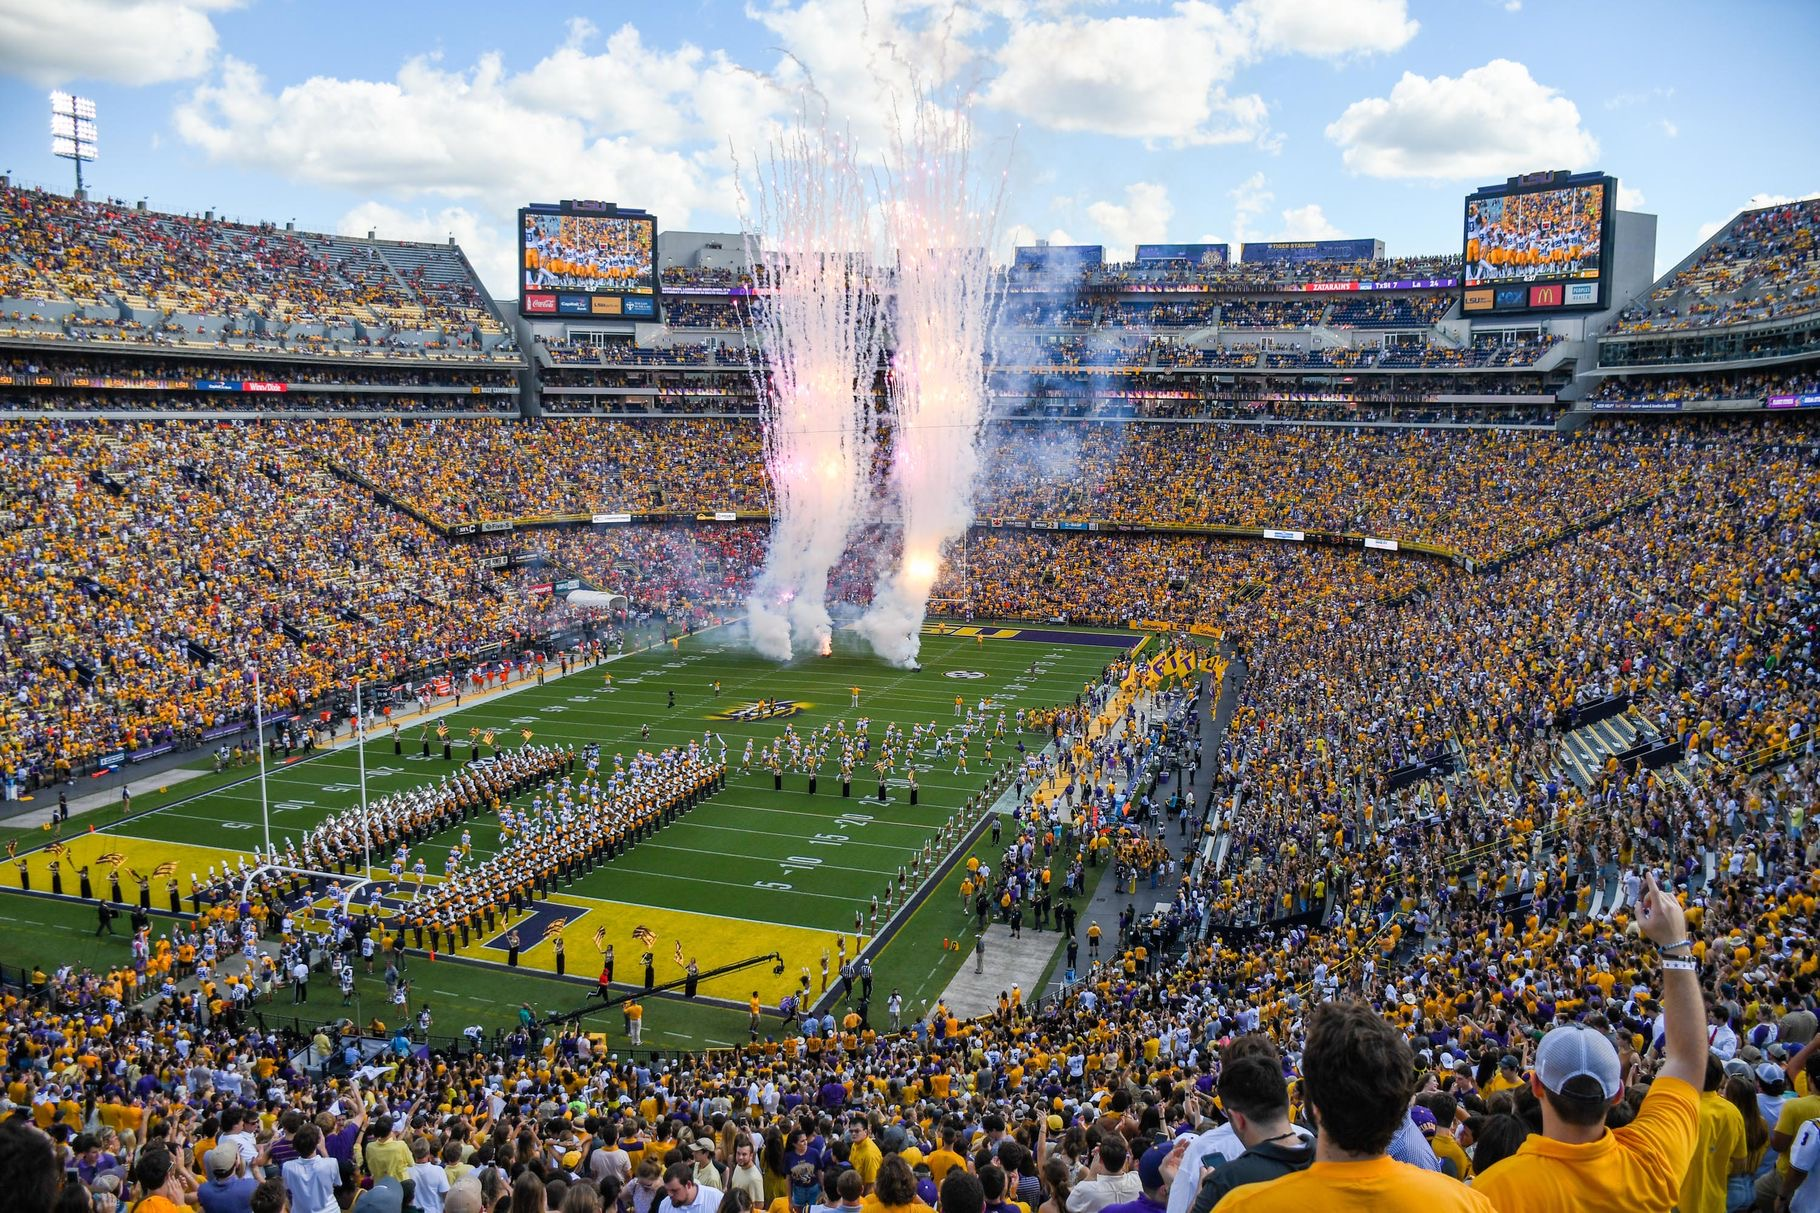 SEC lifts ban on stadium-wide alcohol sales